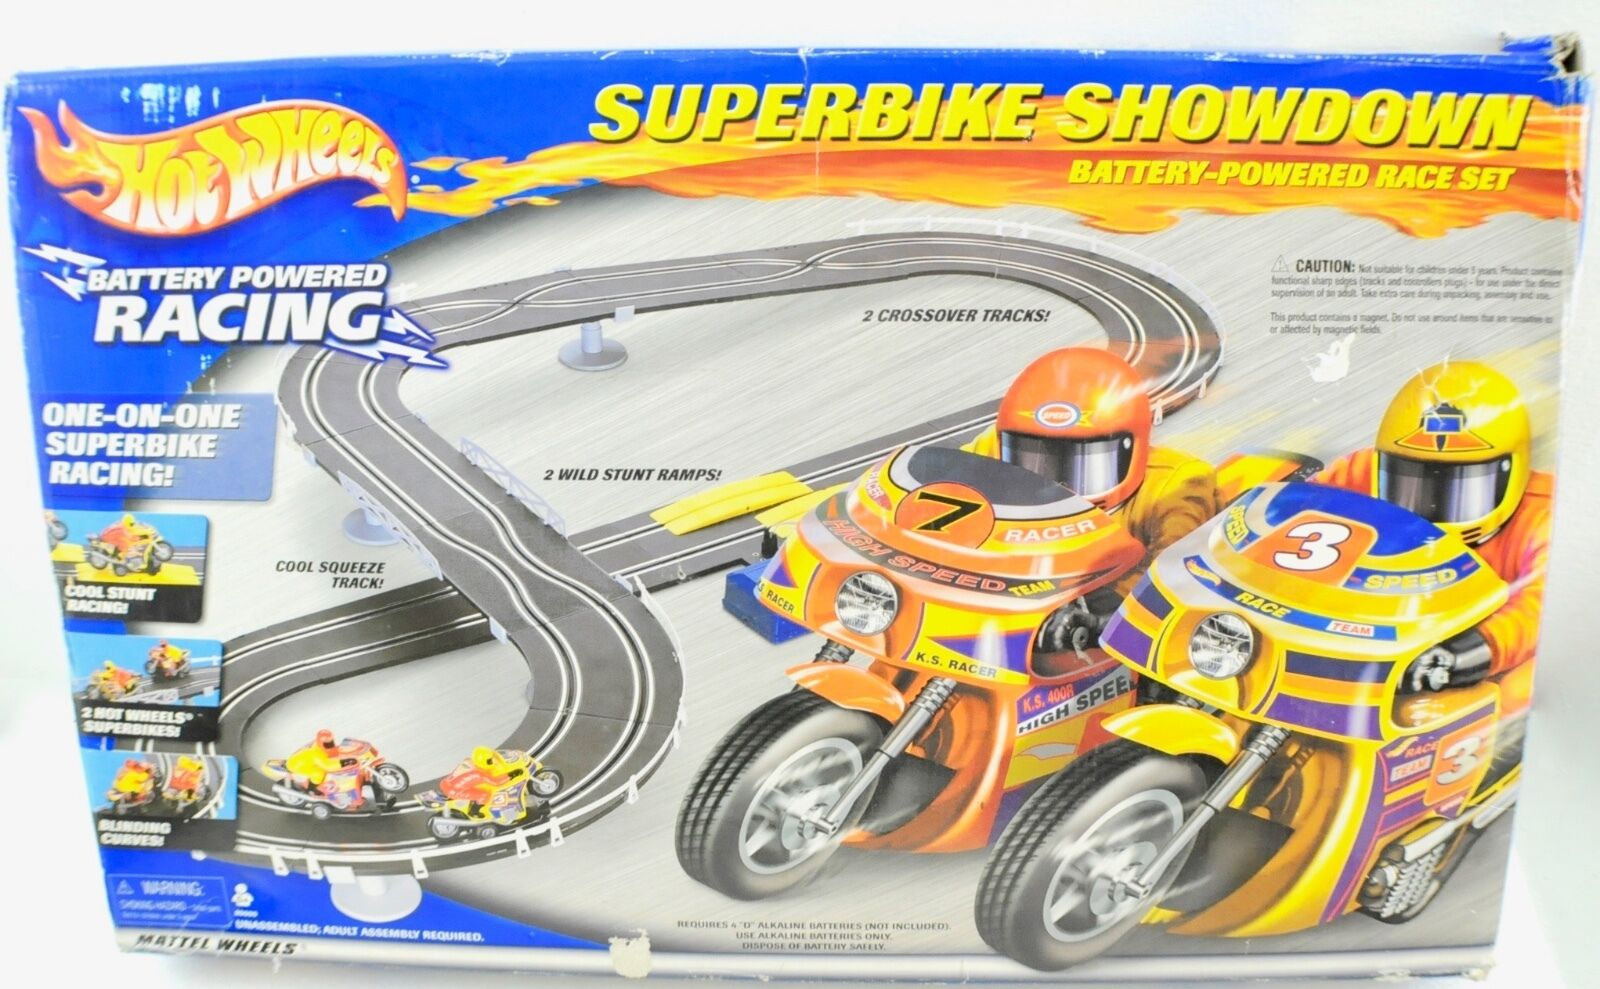 Vintage Hot Wheels SuperFahrrad Showdown Race Set